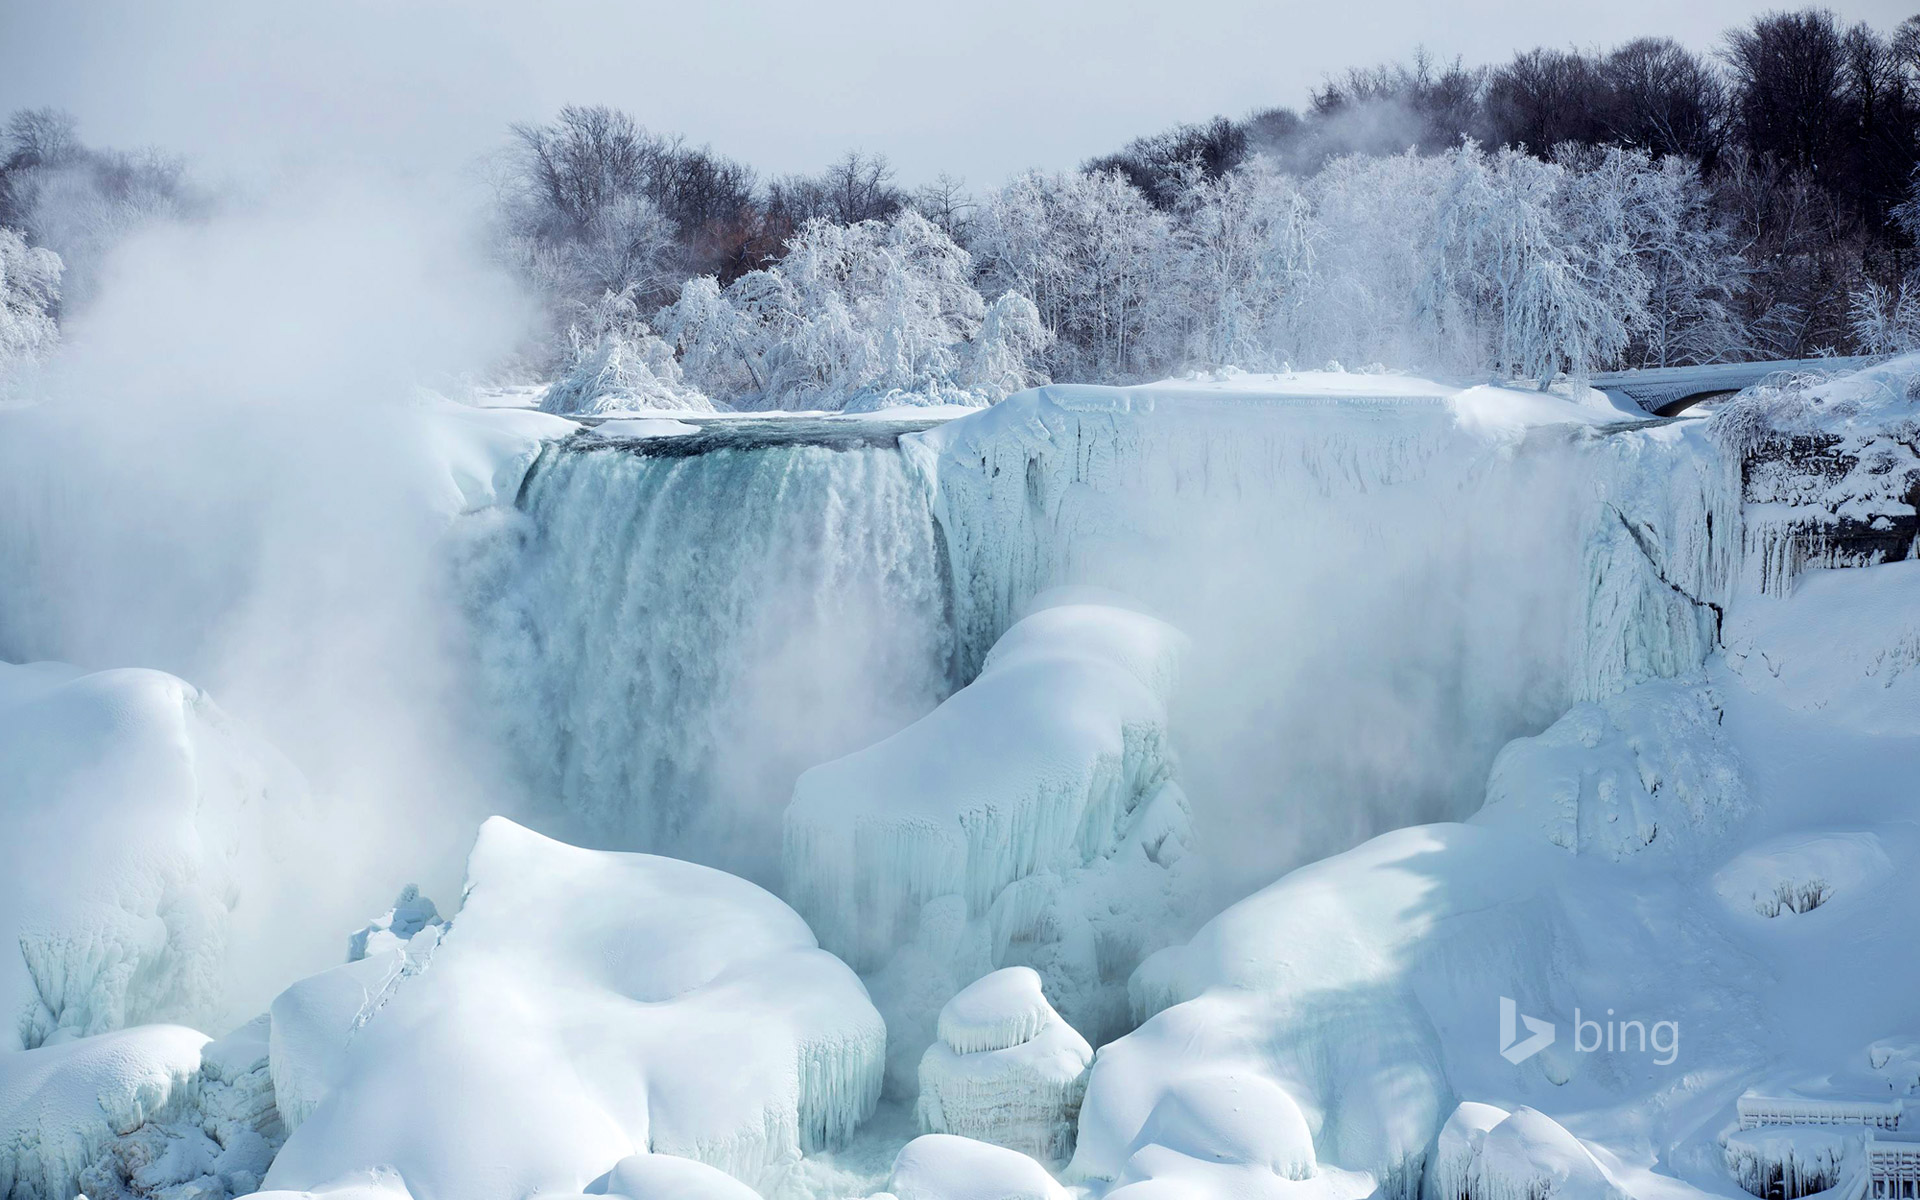 American Falls as seen from Niagara Falls, Ontario, Canada, February 19, 2015